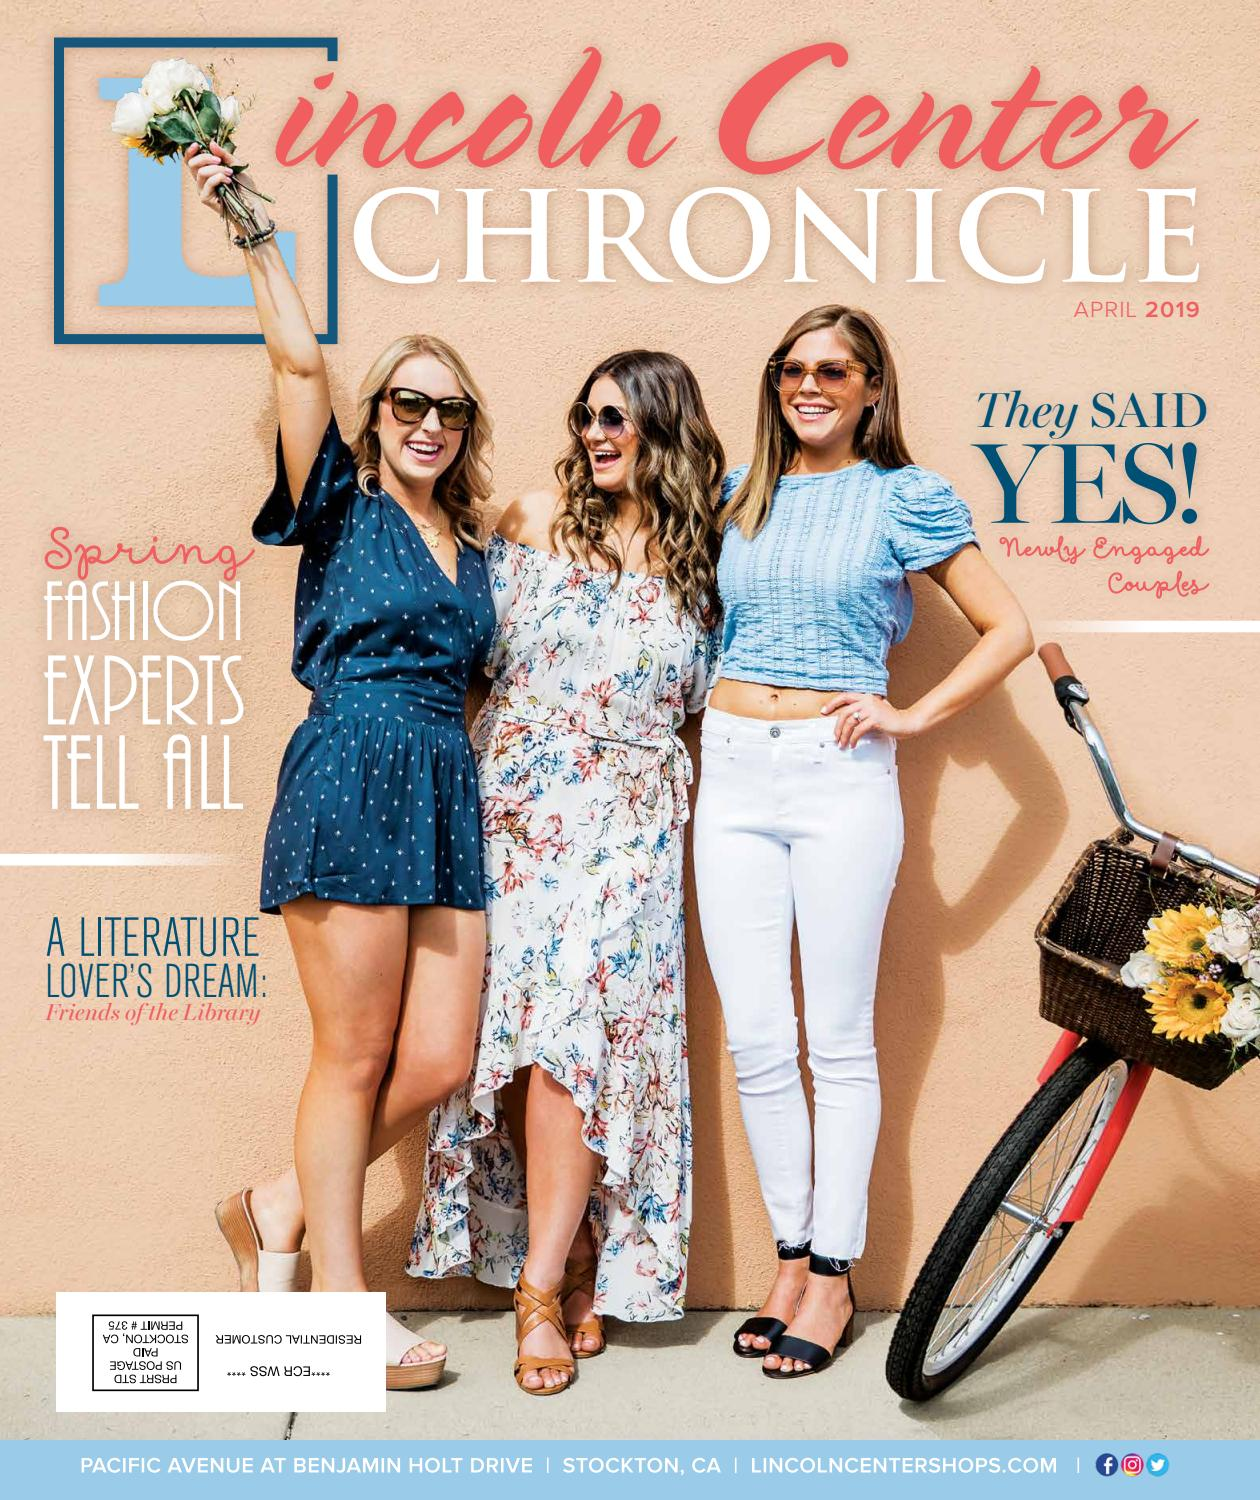 7627ef00567 Lincoln Center Chronicle April 2019 by Lincoln Center - issuu